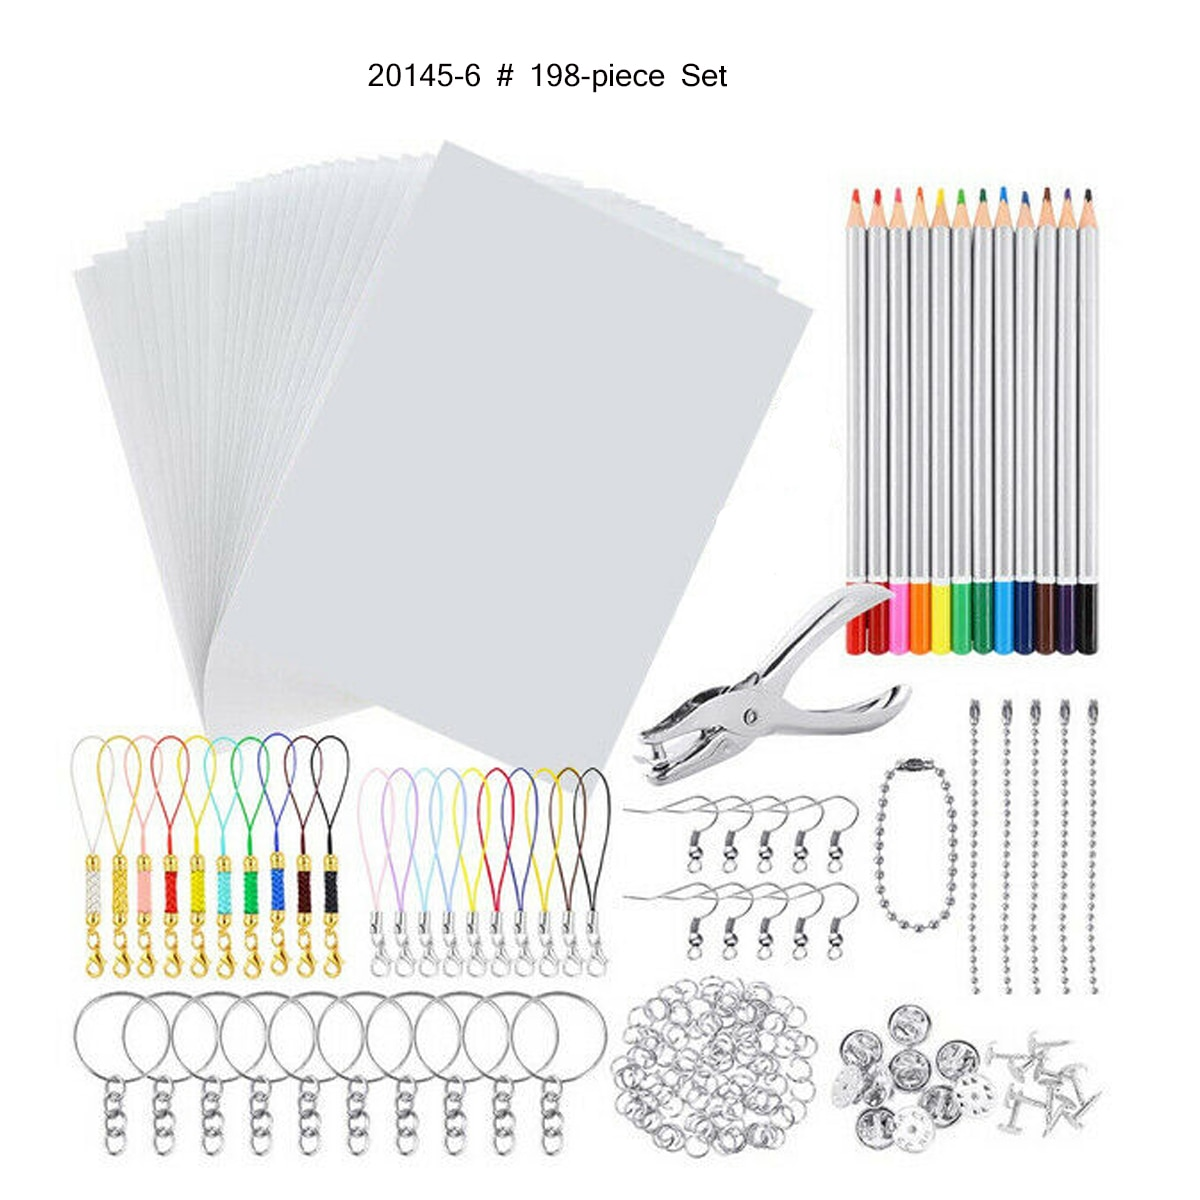 33/145/198PCS Shrinky Art Paper Heat Shrink Sheet Plastic Kit Hole Punch Keychains Pencils DIY Drawing Art Supply